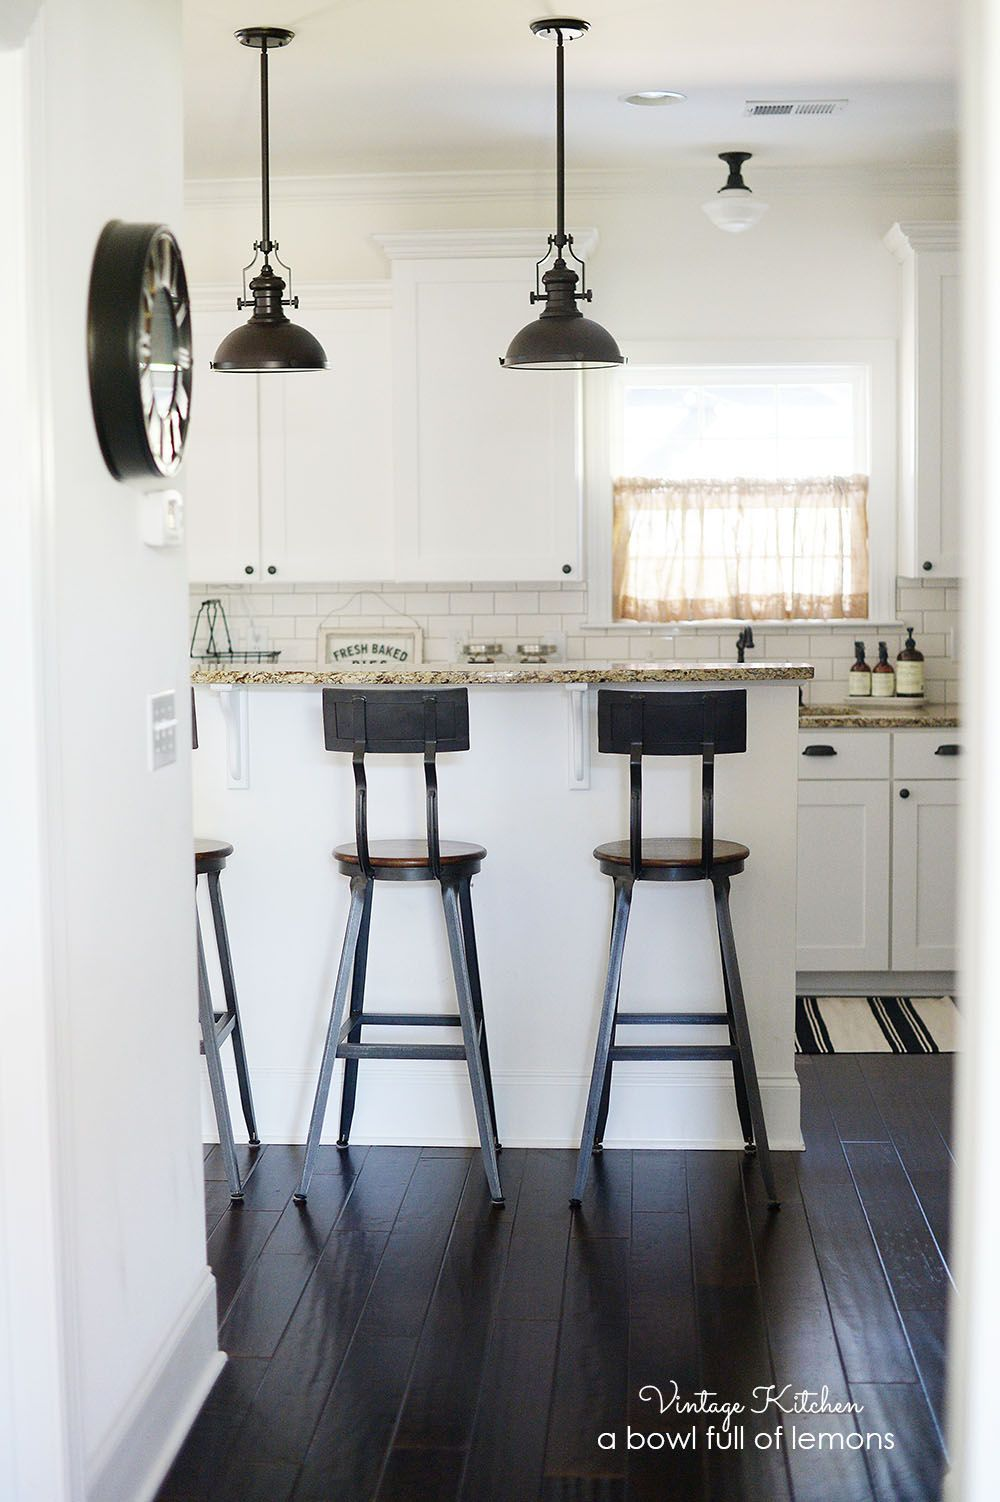 How to add vintage style to a builders grade kitchen by A Bowl Full ...